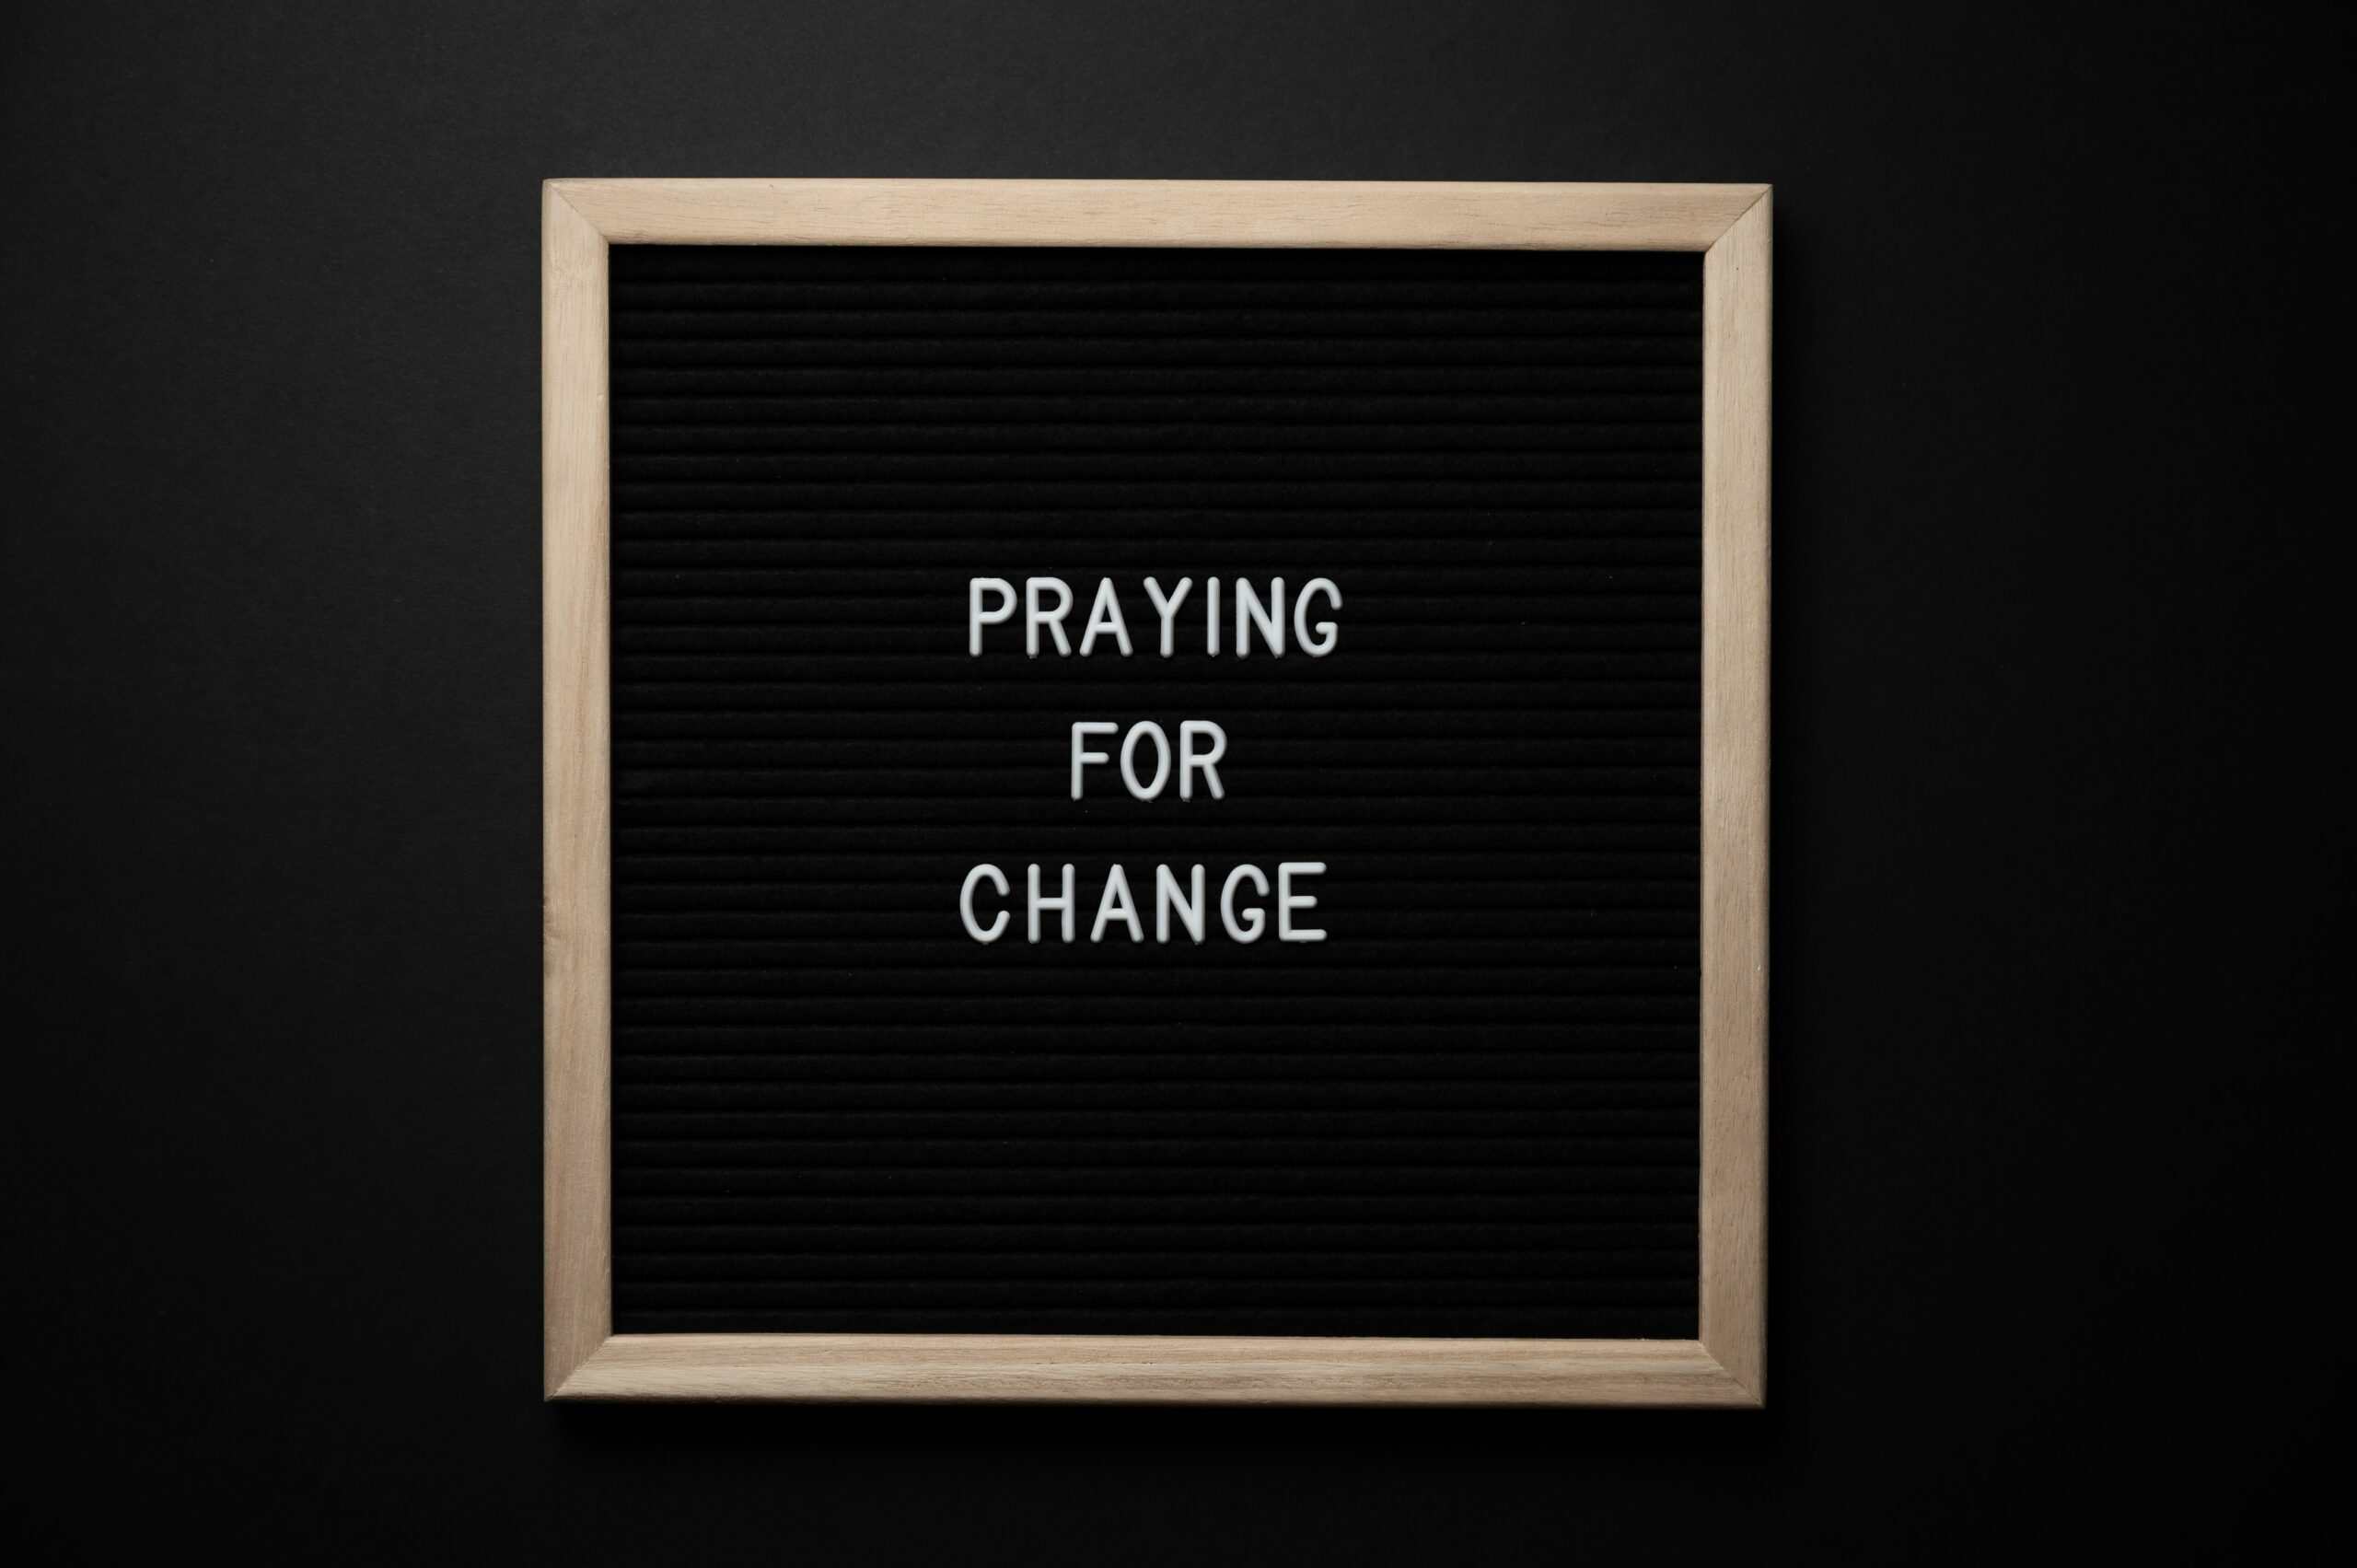 """the phrase """"praying for change"""" within a frame"""